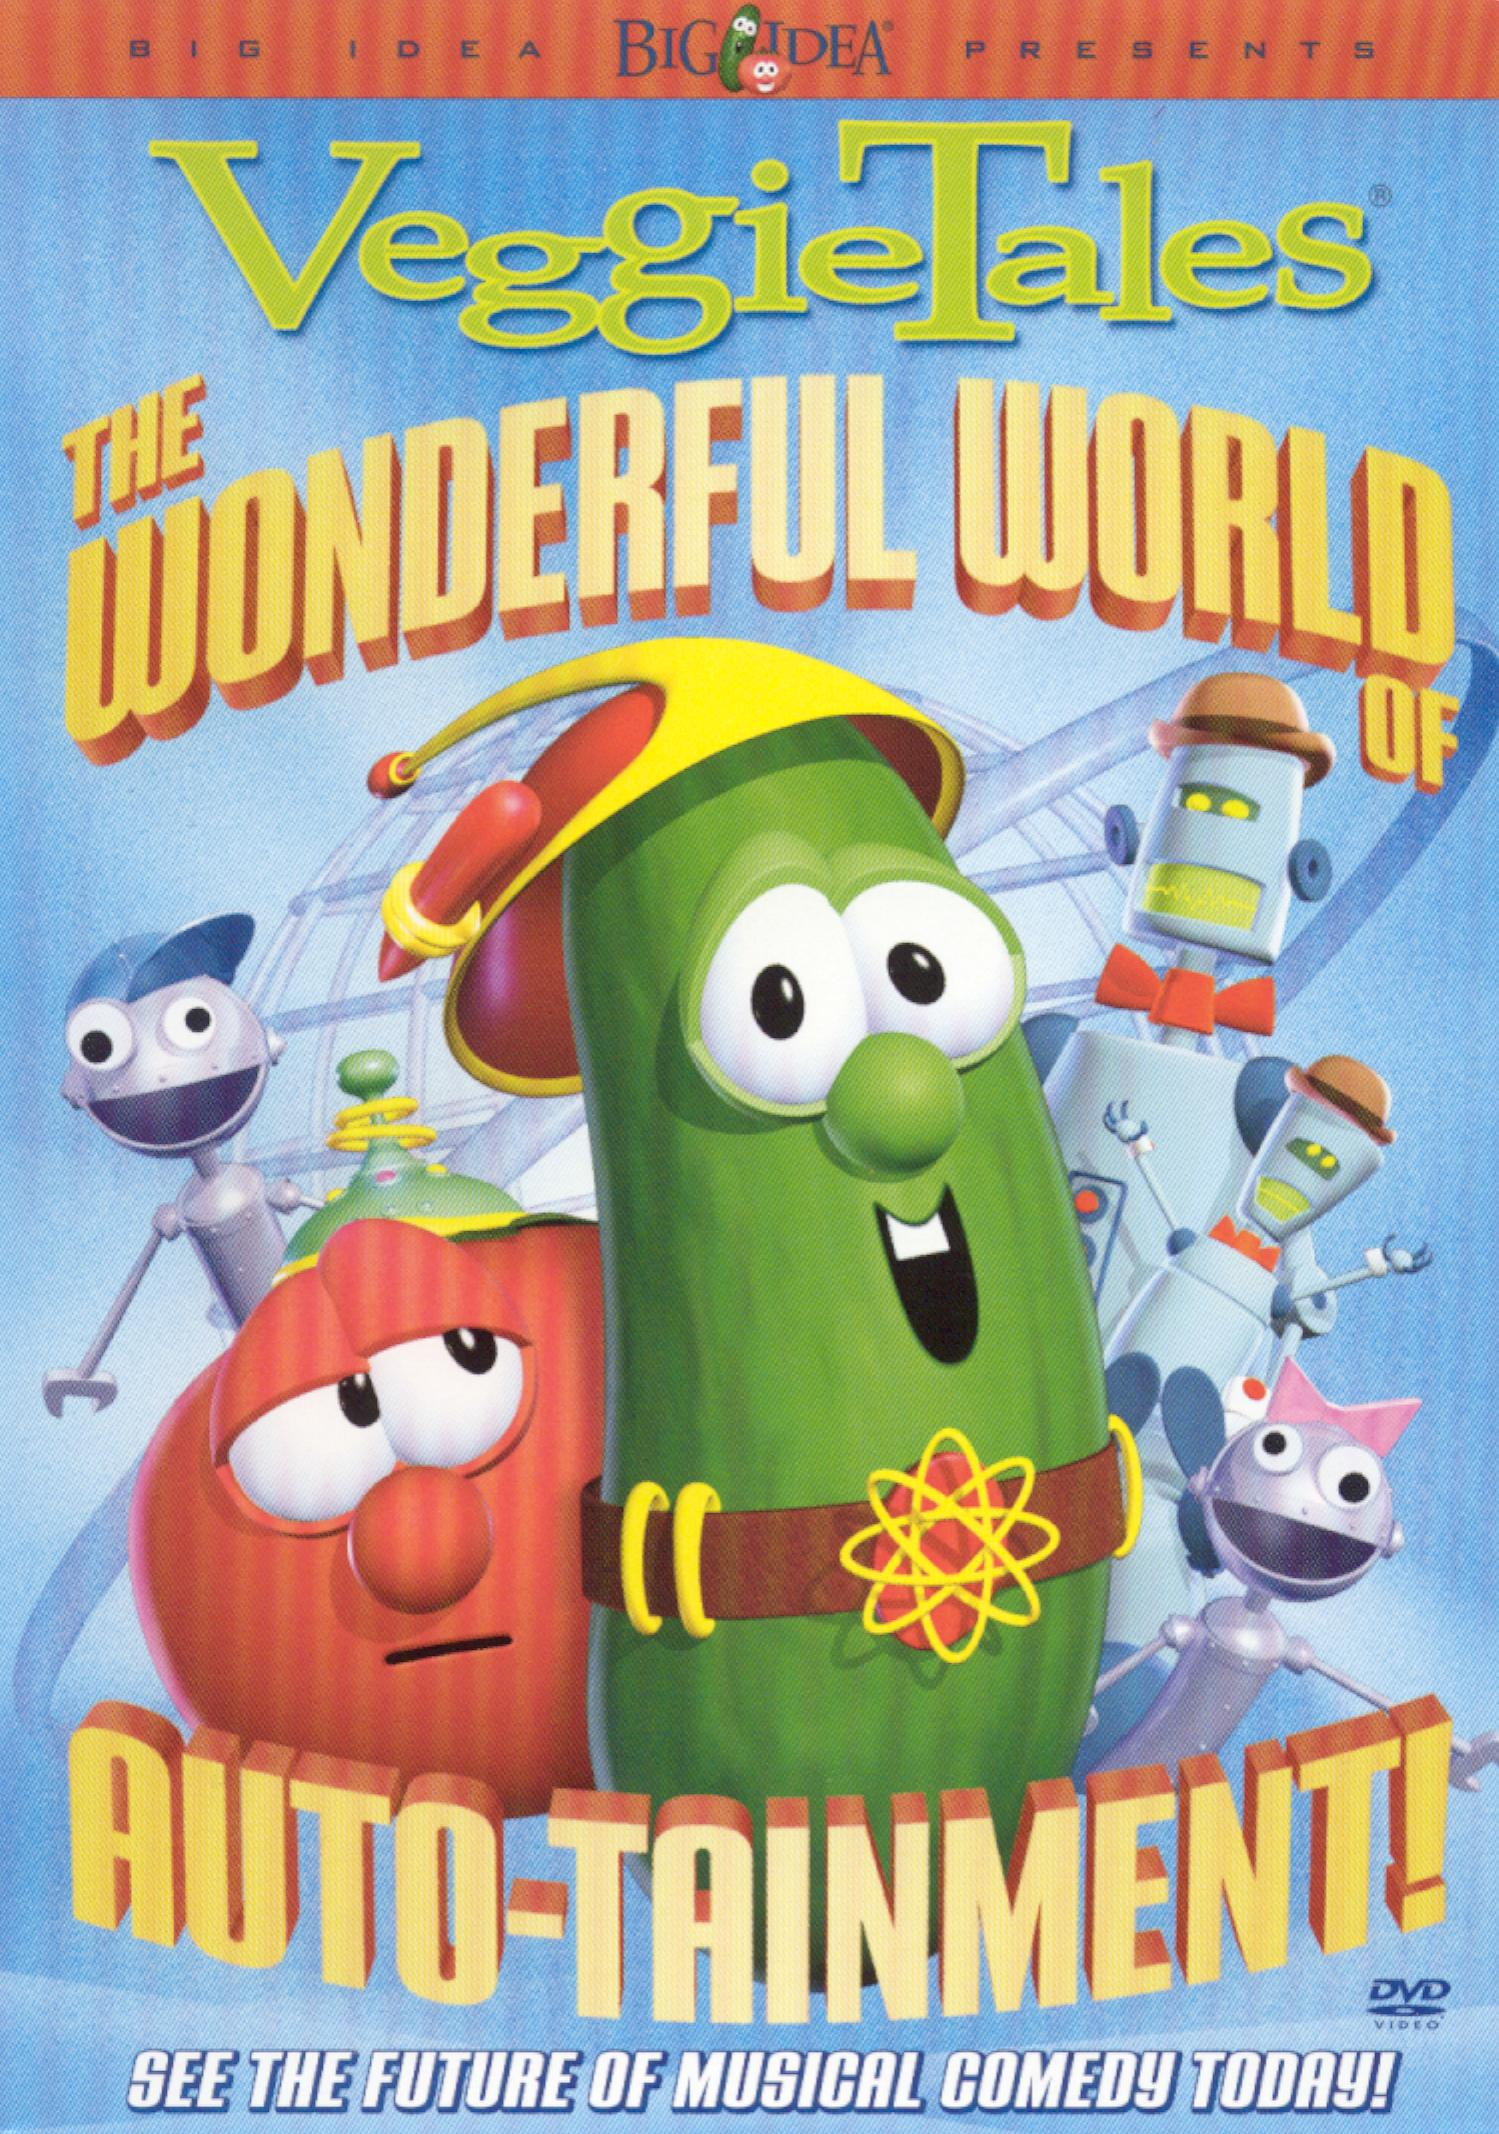 Veggie Tales: The Wonderful World of Auto-Tainment!